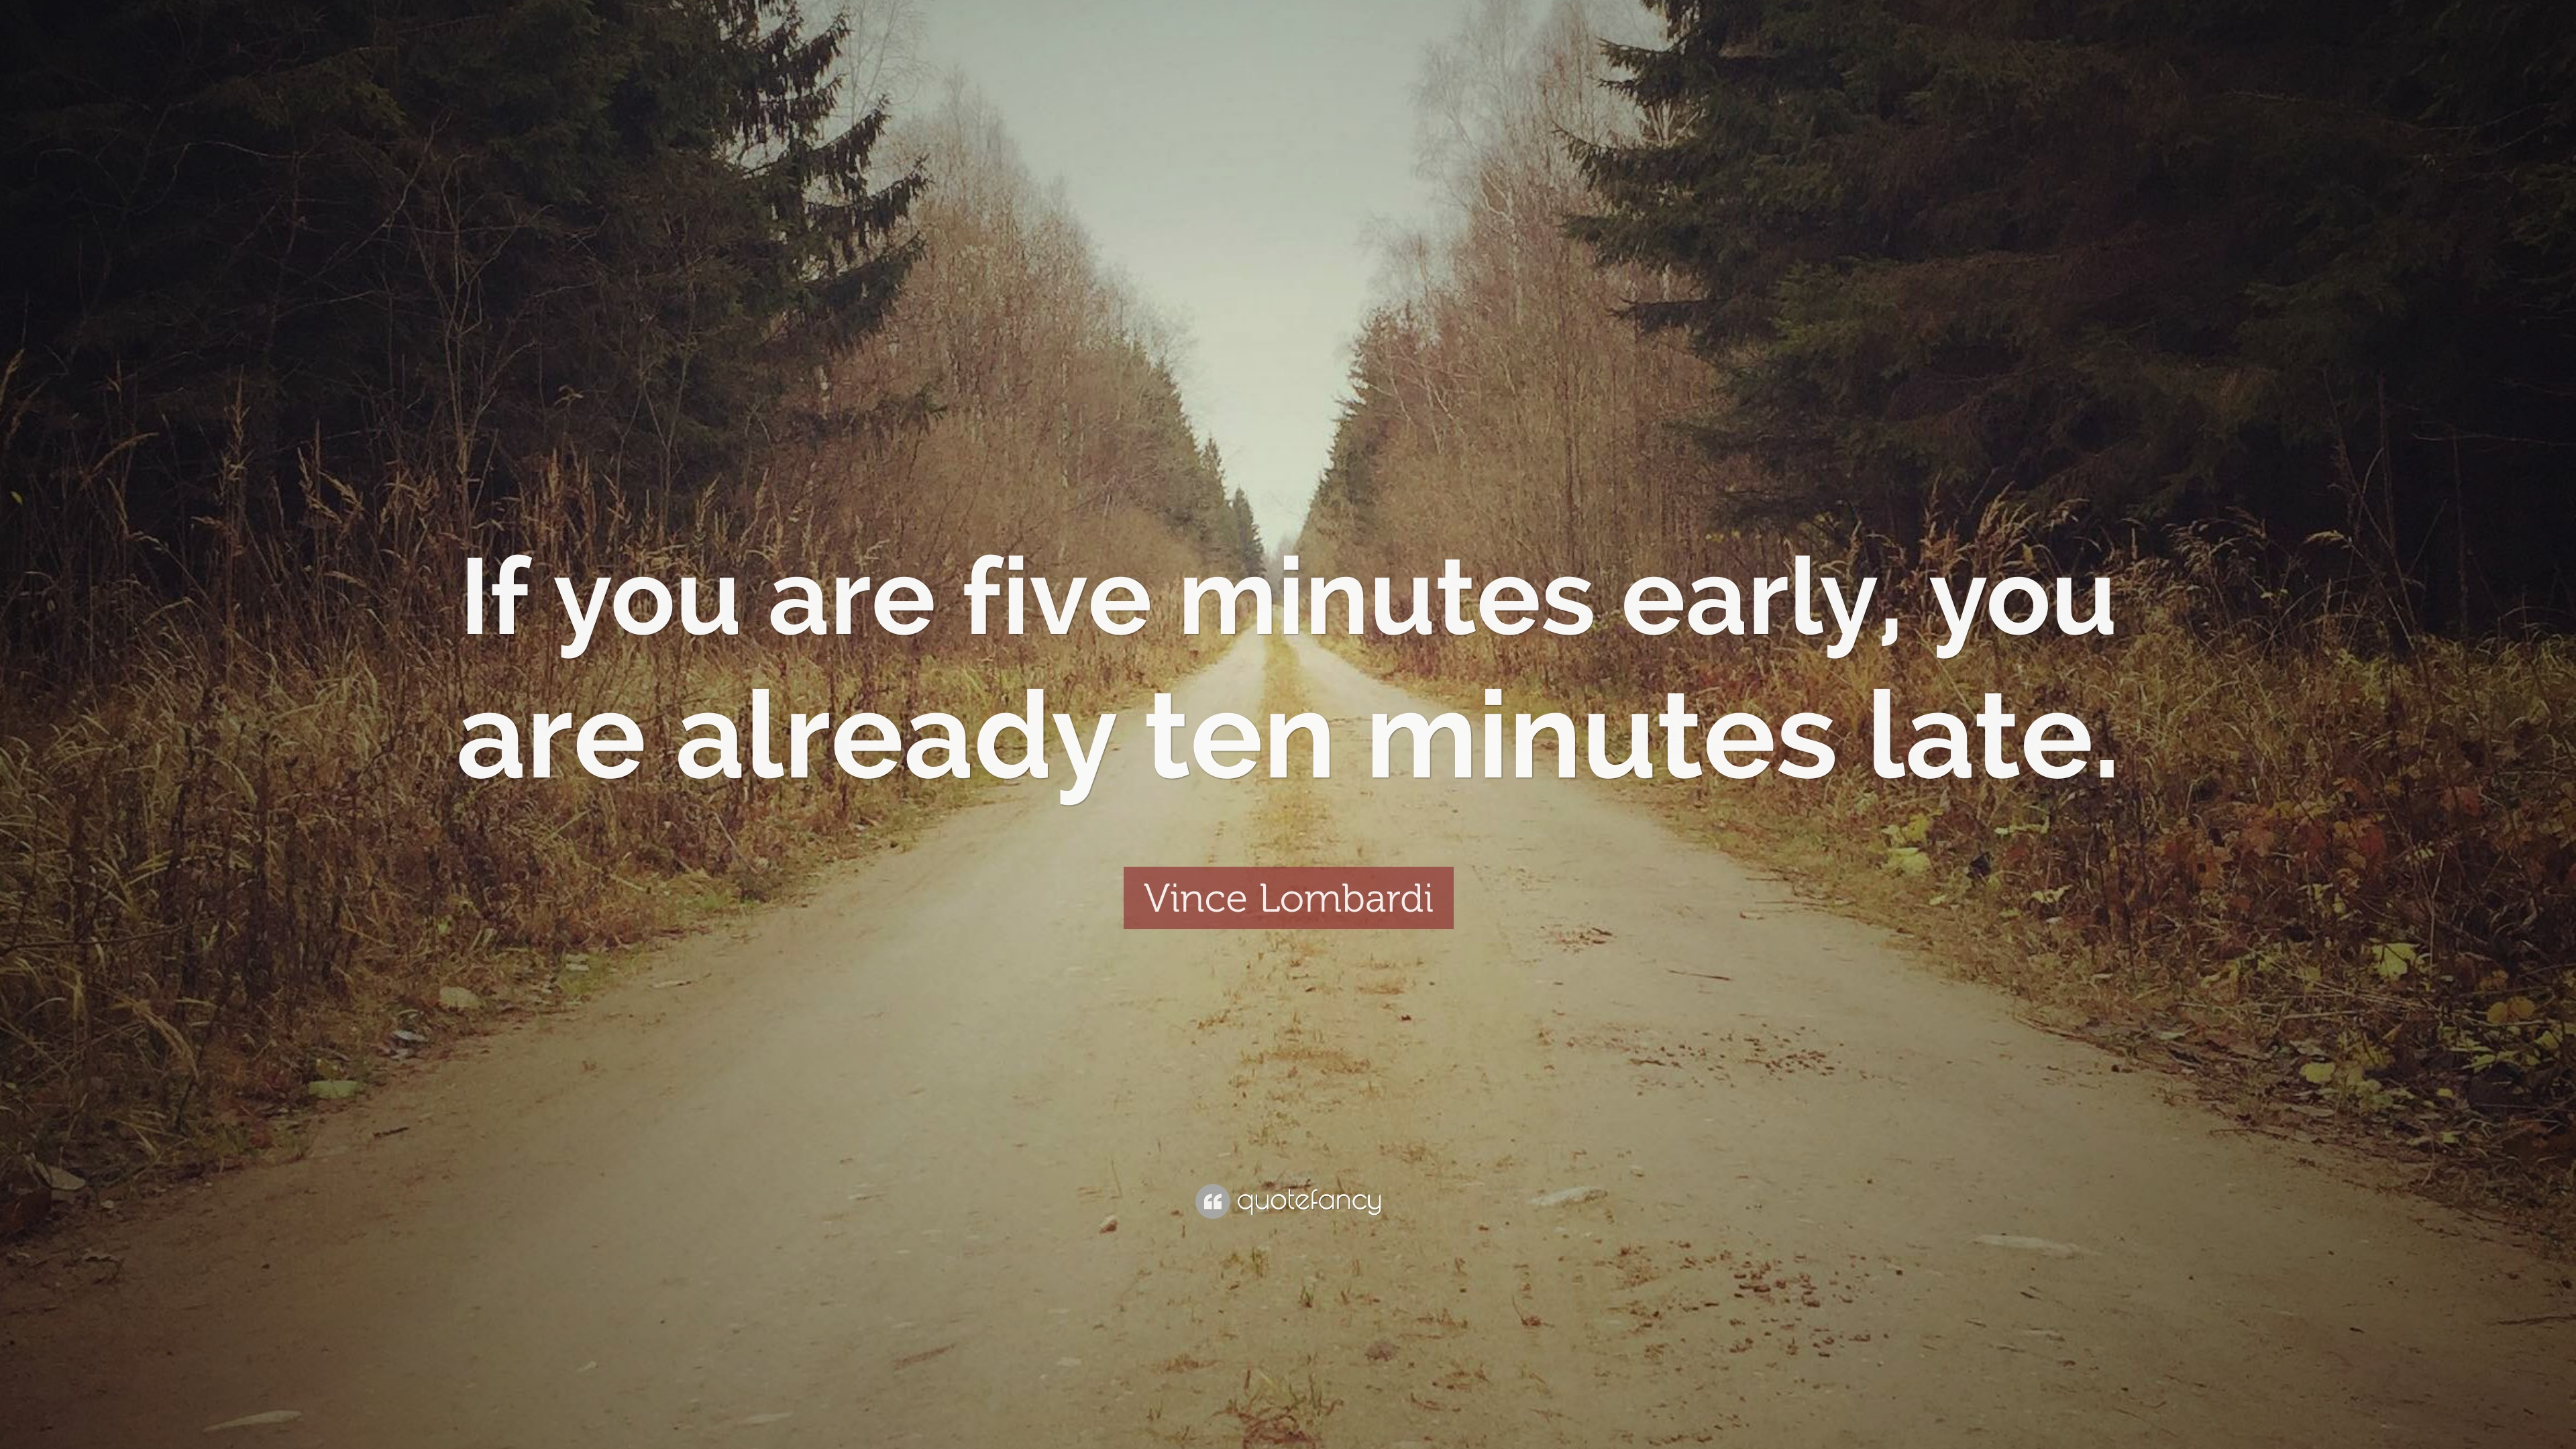 Vince Lombardi Quote If You Are Five Minutes Early You Are